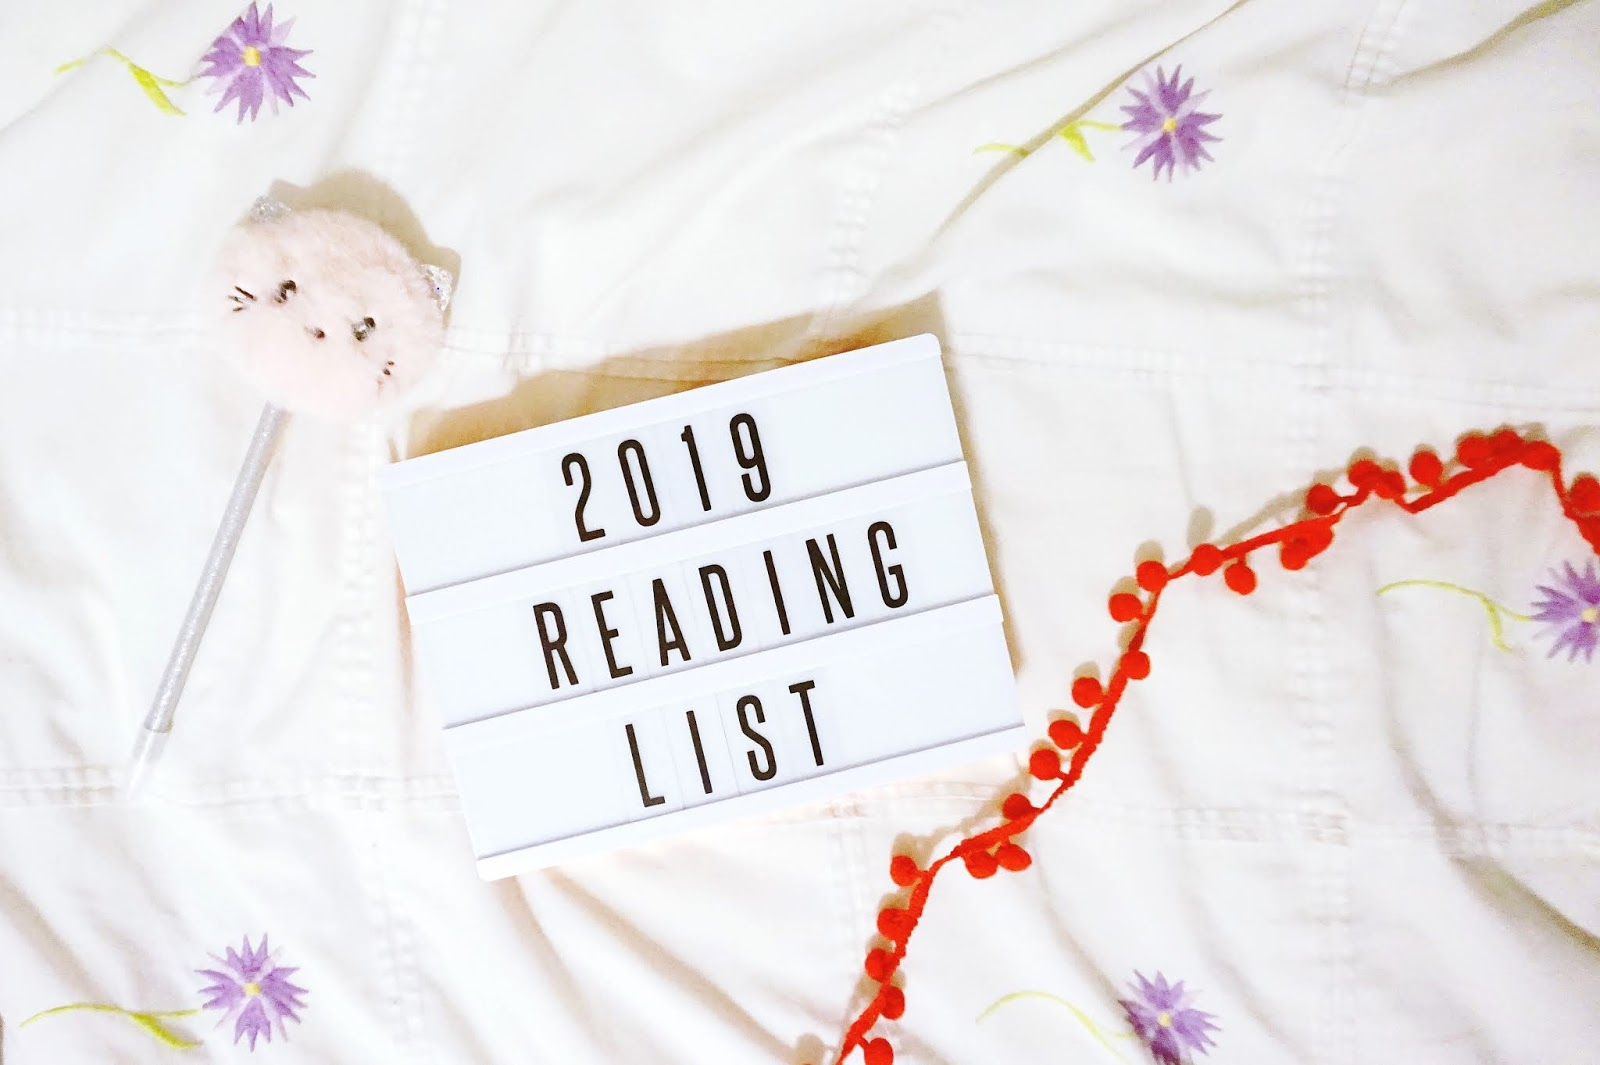 books, reading list, 2019 reading list, lightbox